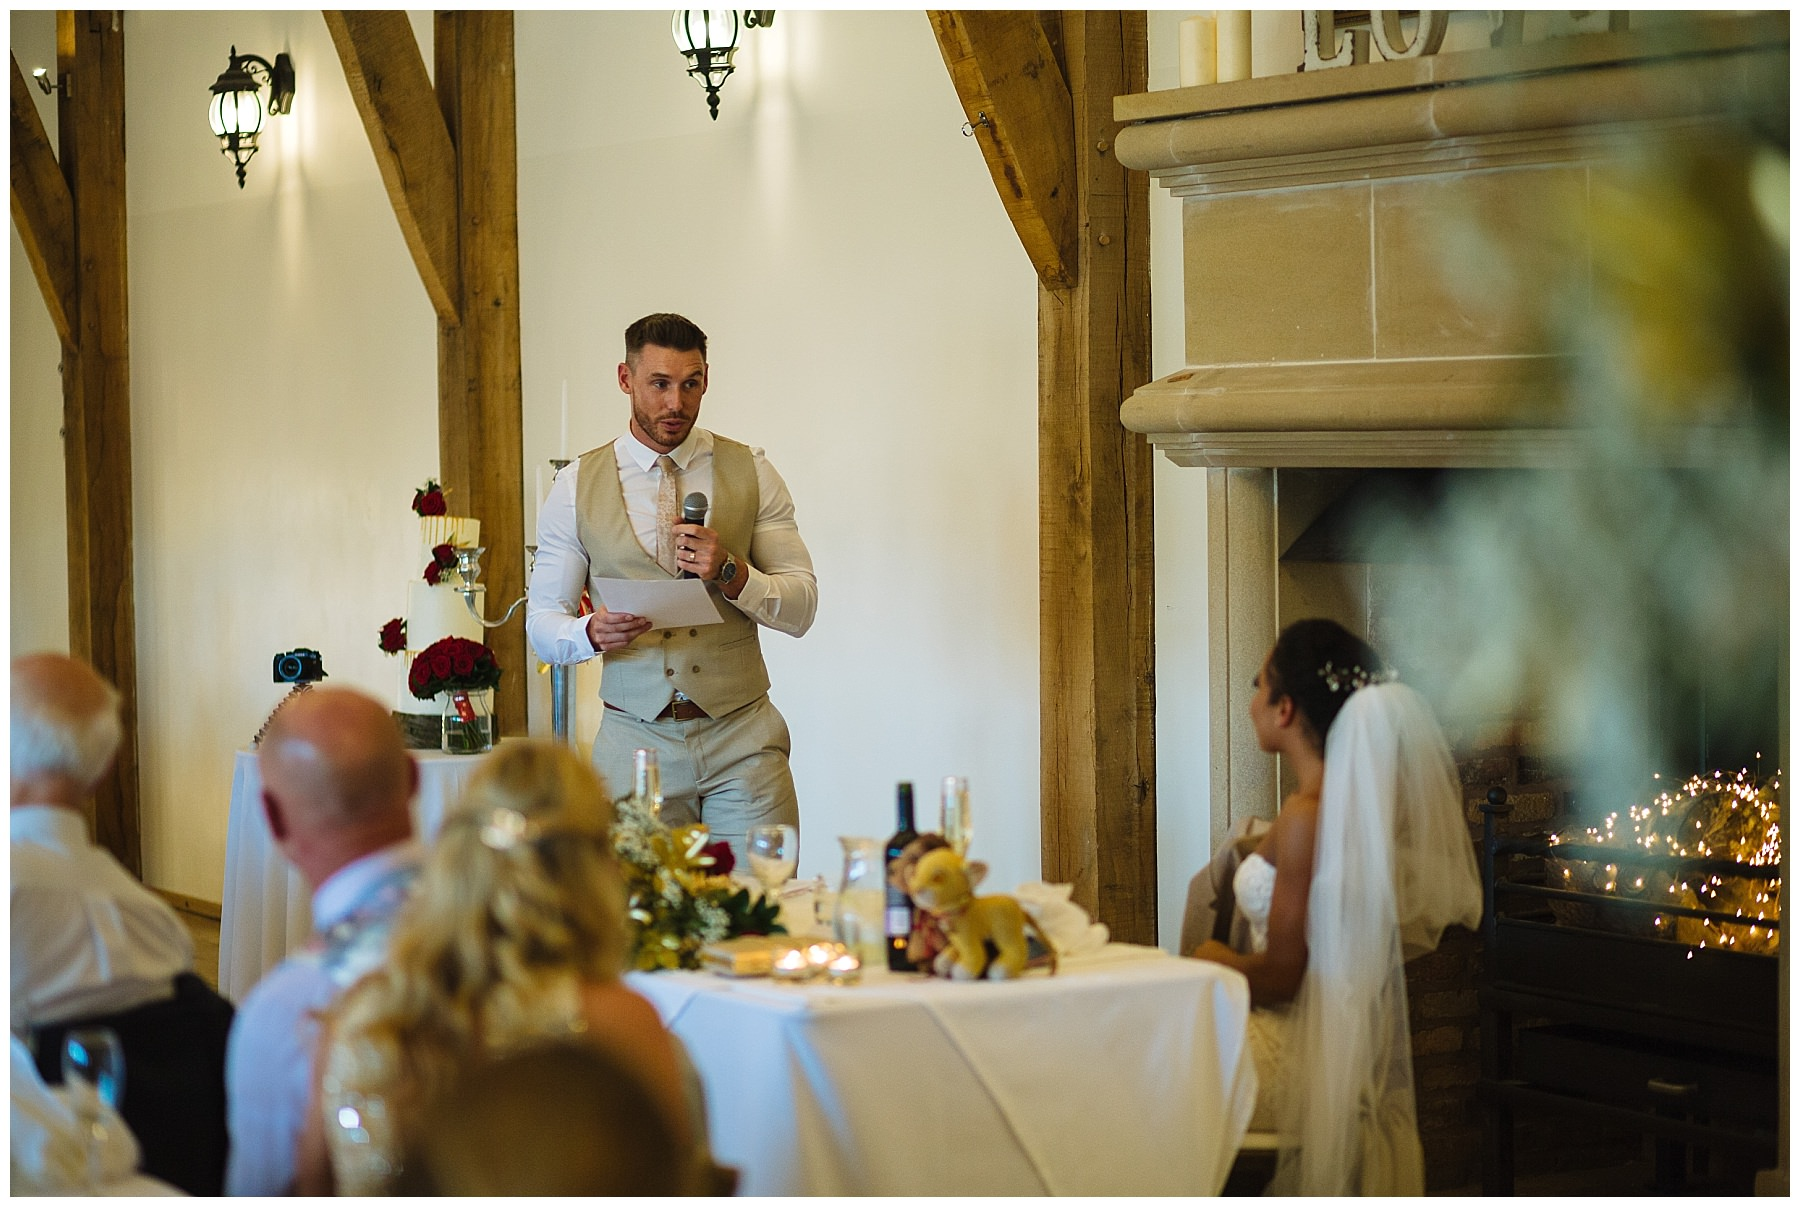 groom stands and speaks to wife during wedding breakfast at swancar farm